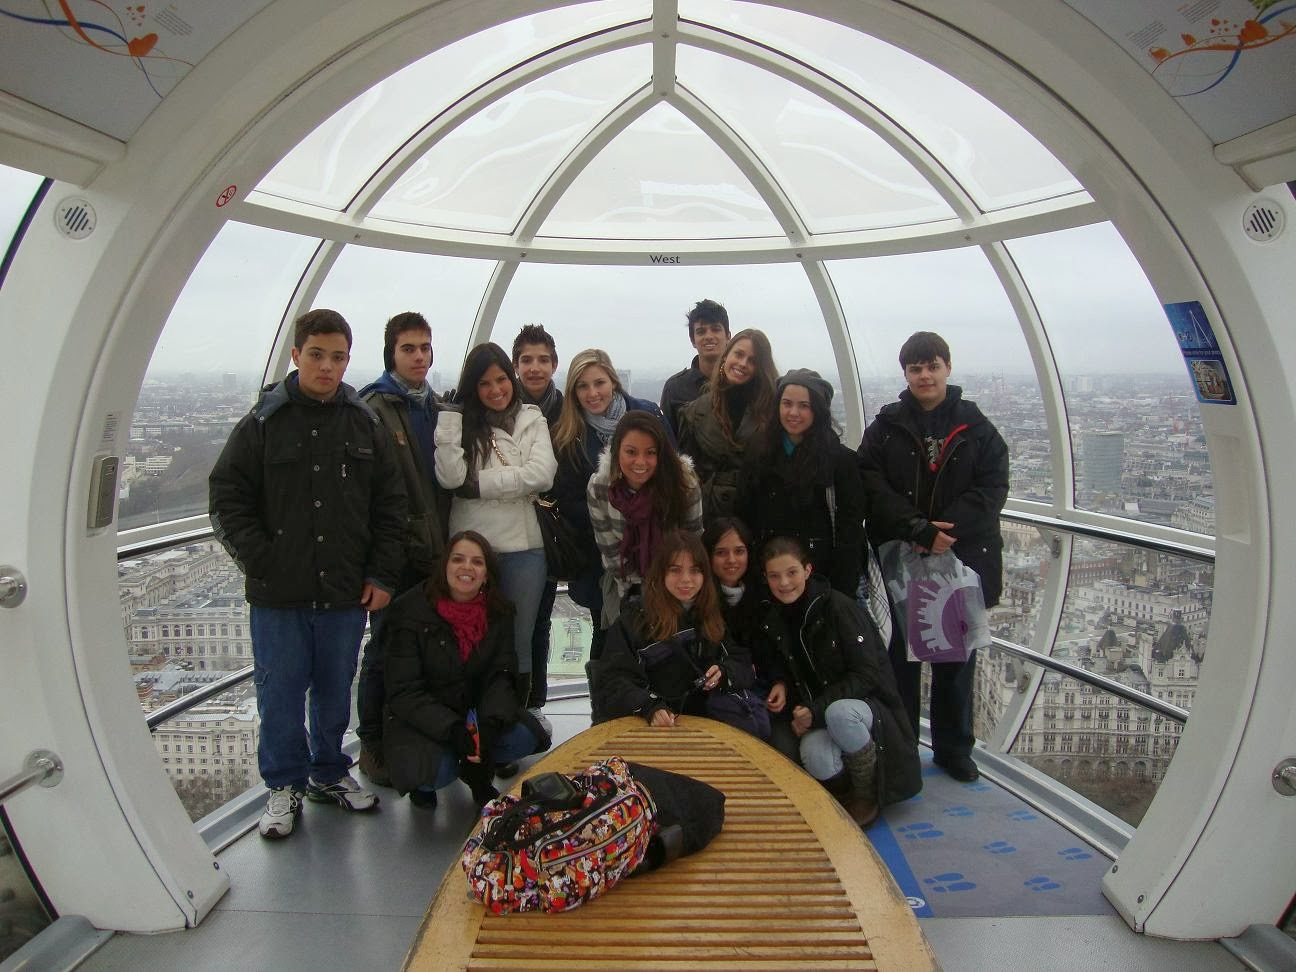 Roda Gigante London Eye em Londres - Inglaterra